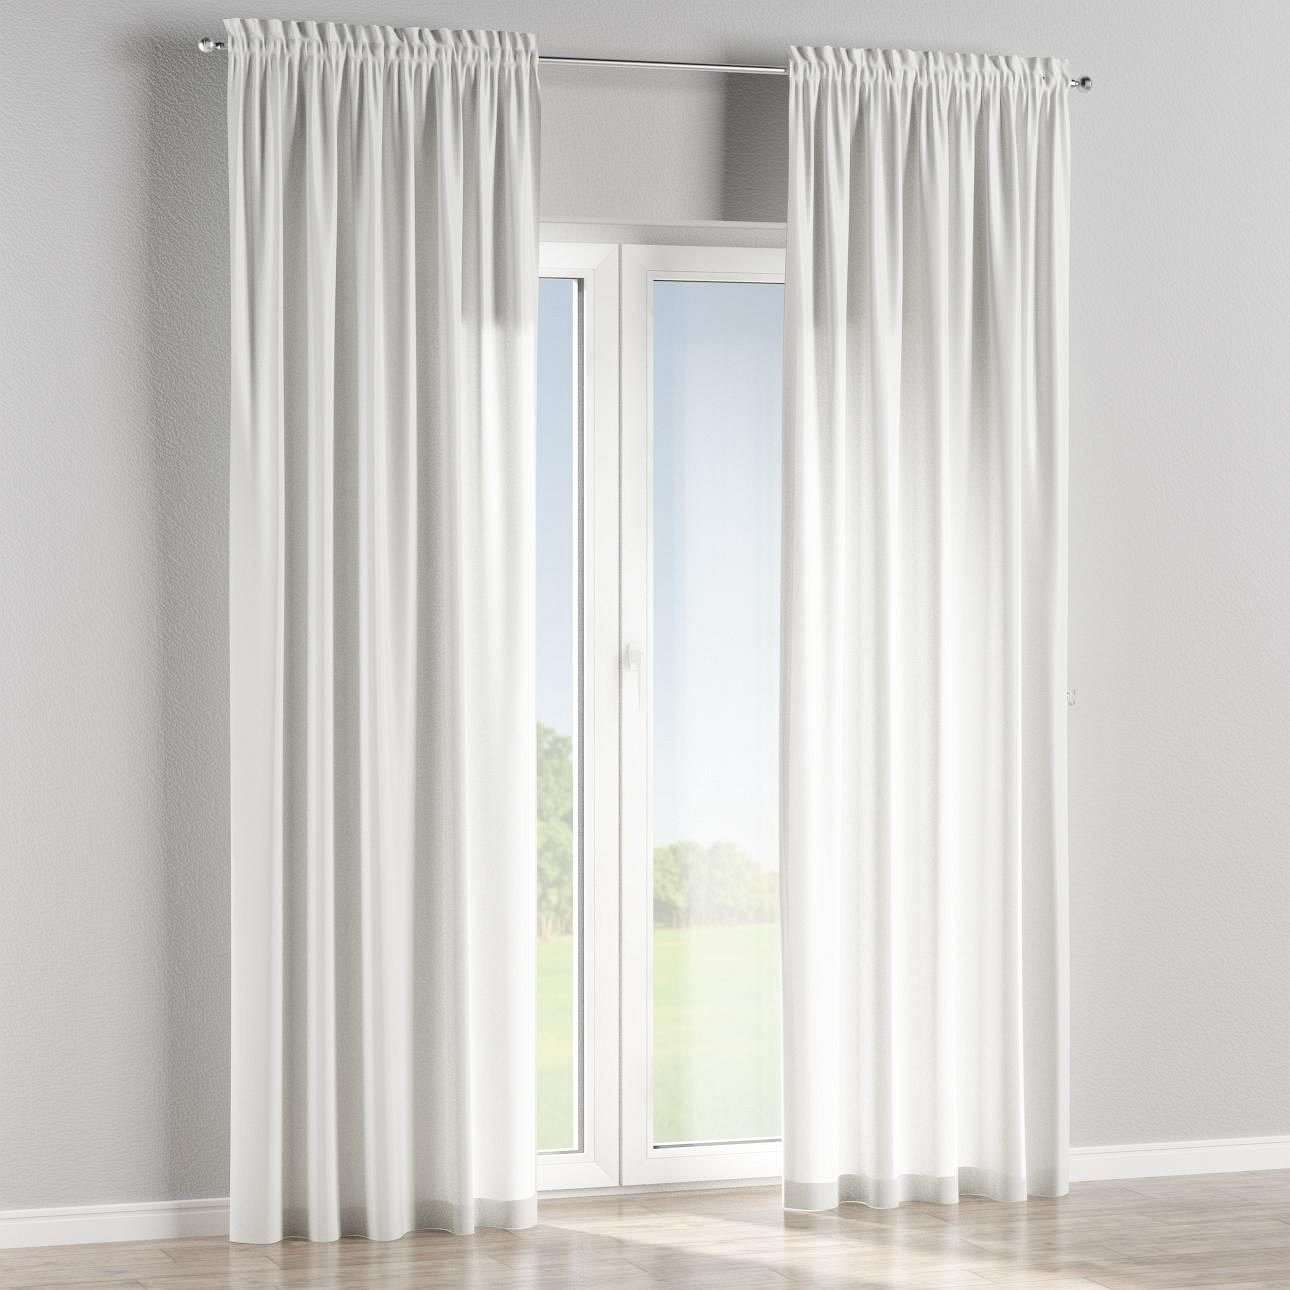 Slot and frill lined curtains in collection Freestyle, fabric: 140-57